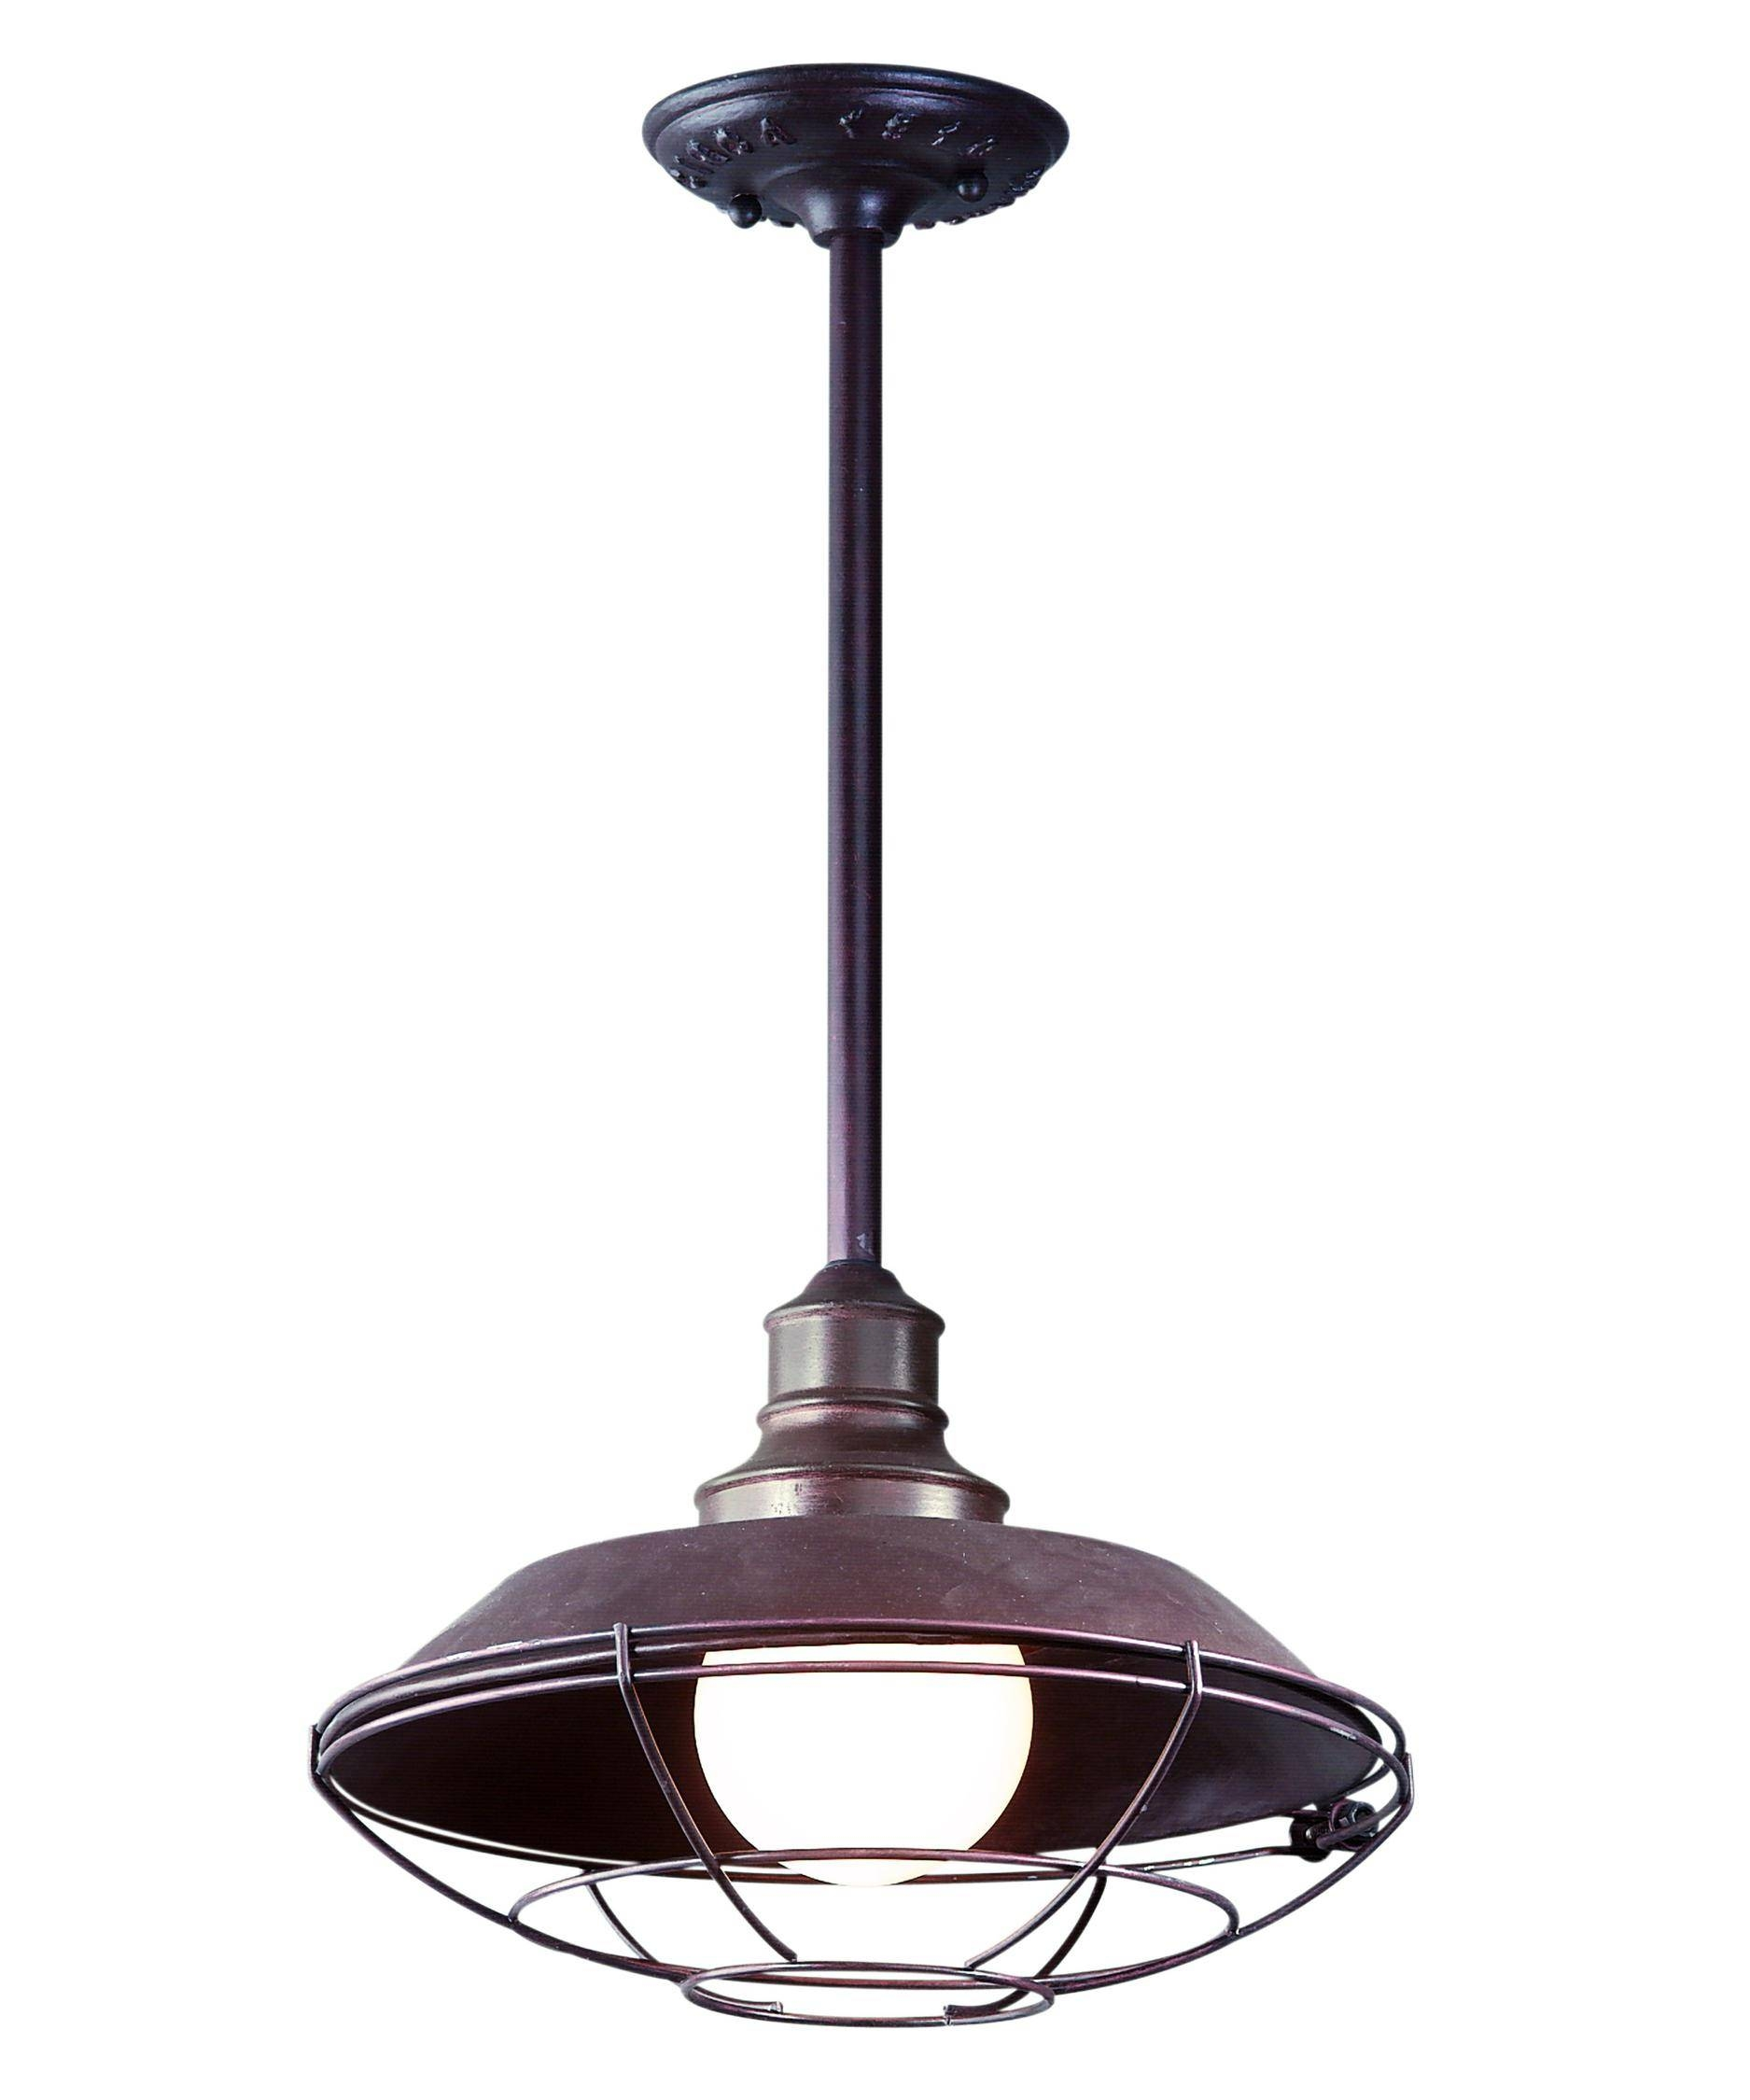 Troy Lighting F9273 Circa 1910 12 Inch Wide 1 Light Outdoor With Outdoor Pendant Lighting (View 15 of 15)